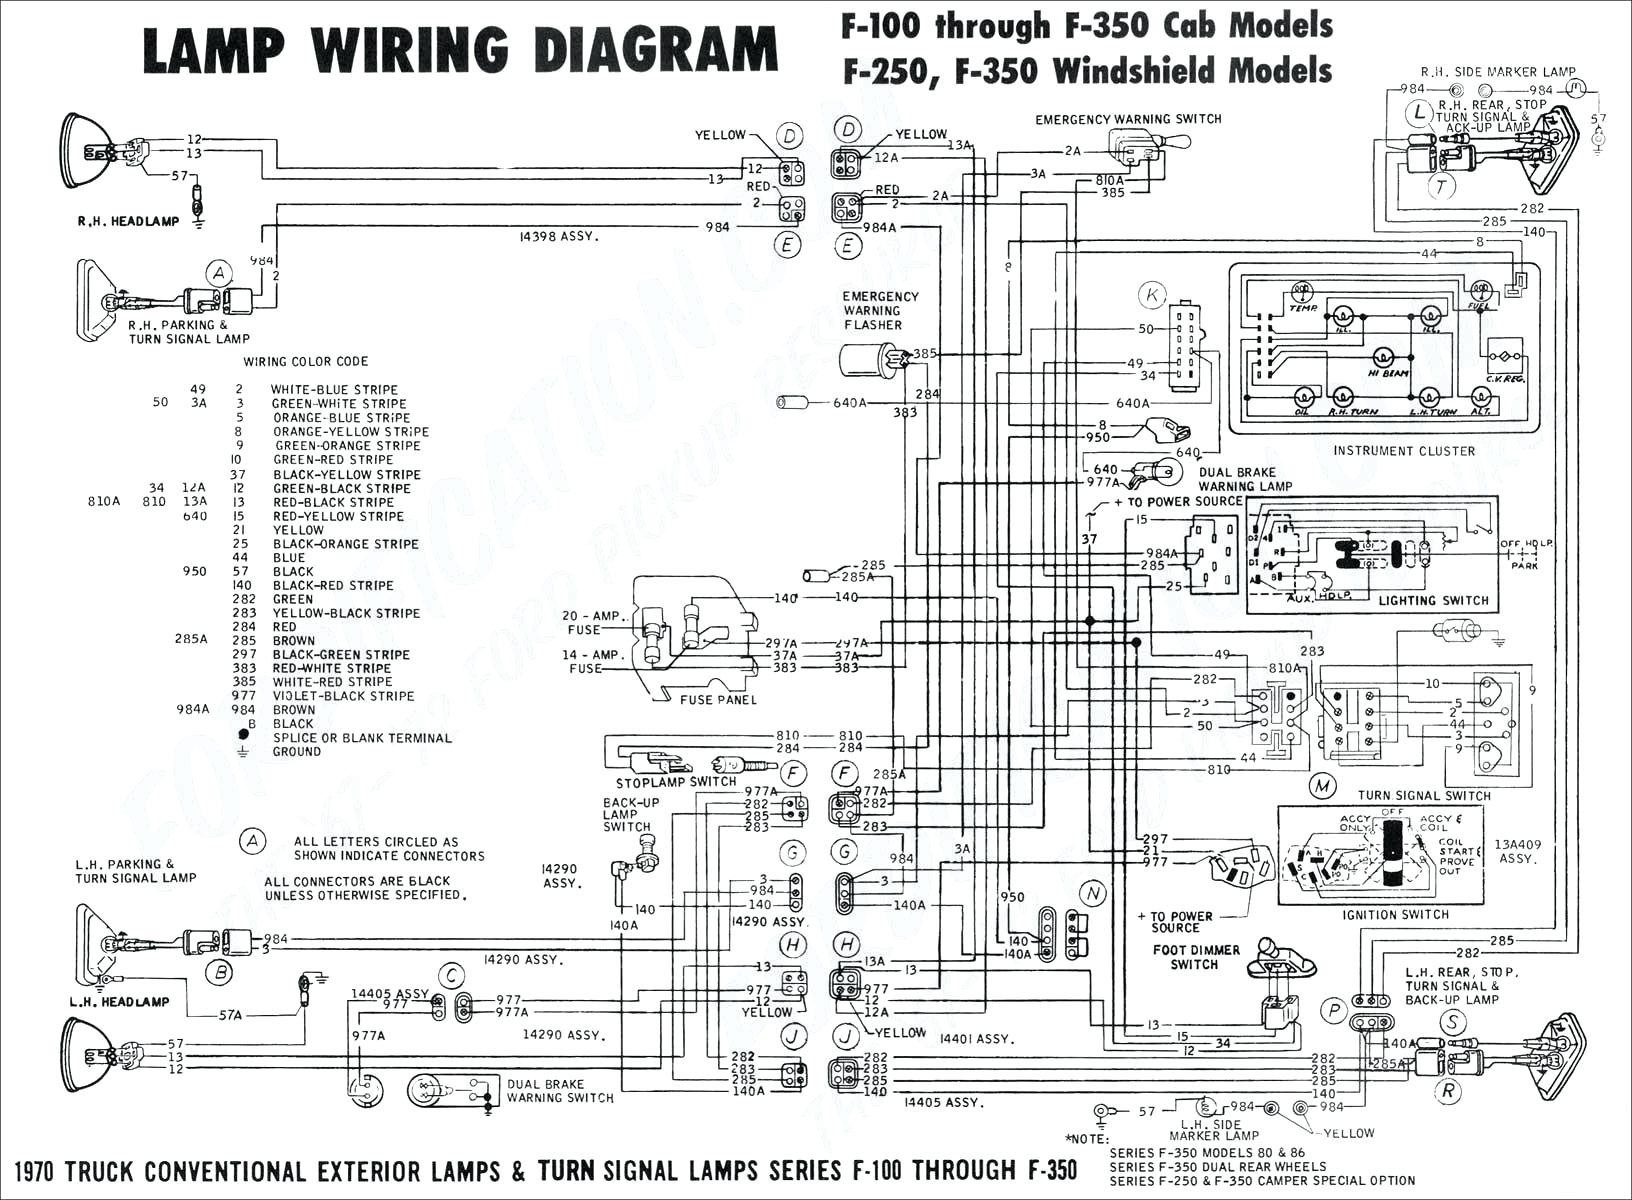 ferrari engine diagram ford f150 engine diagram another blog about wiring  diagram • of ferrari engine